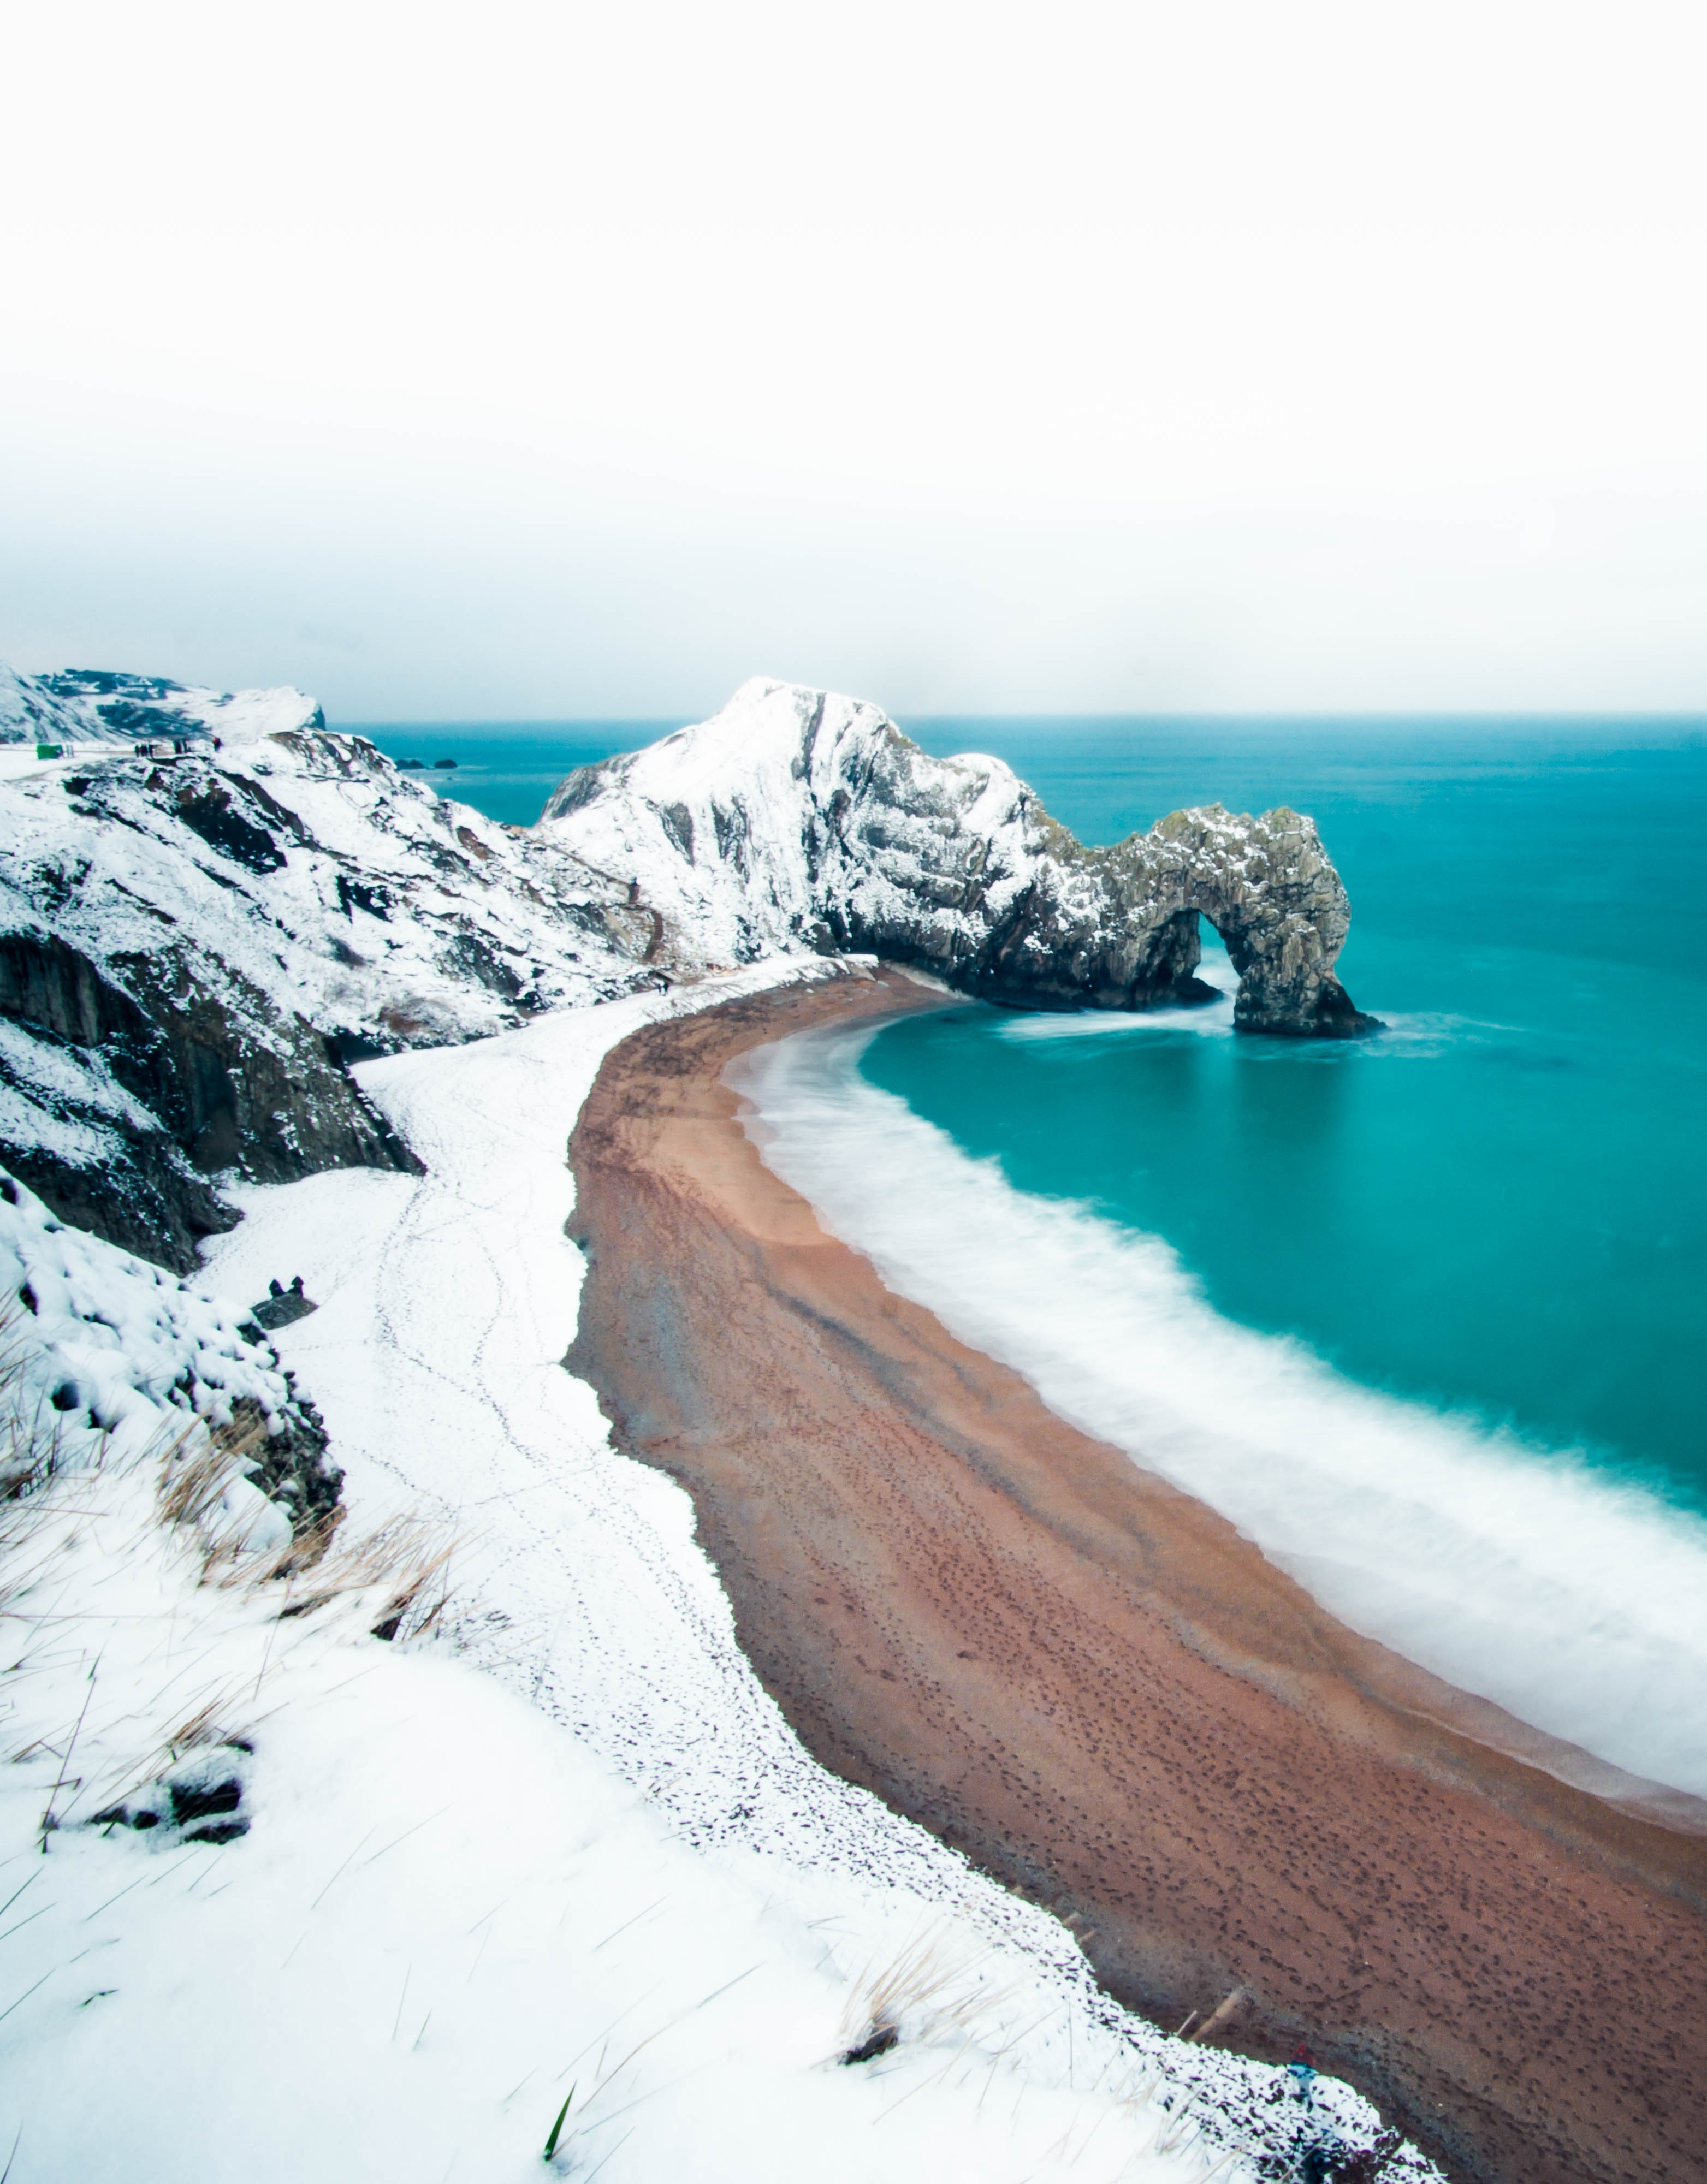 rock formation mountain covered by snow near sea